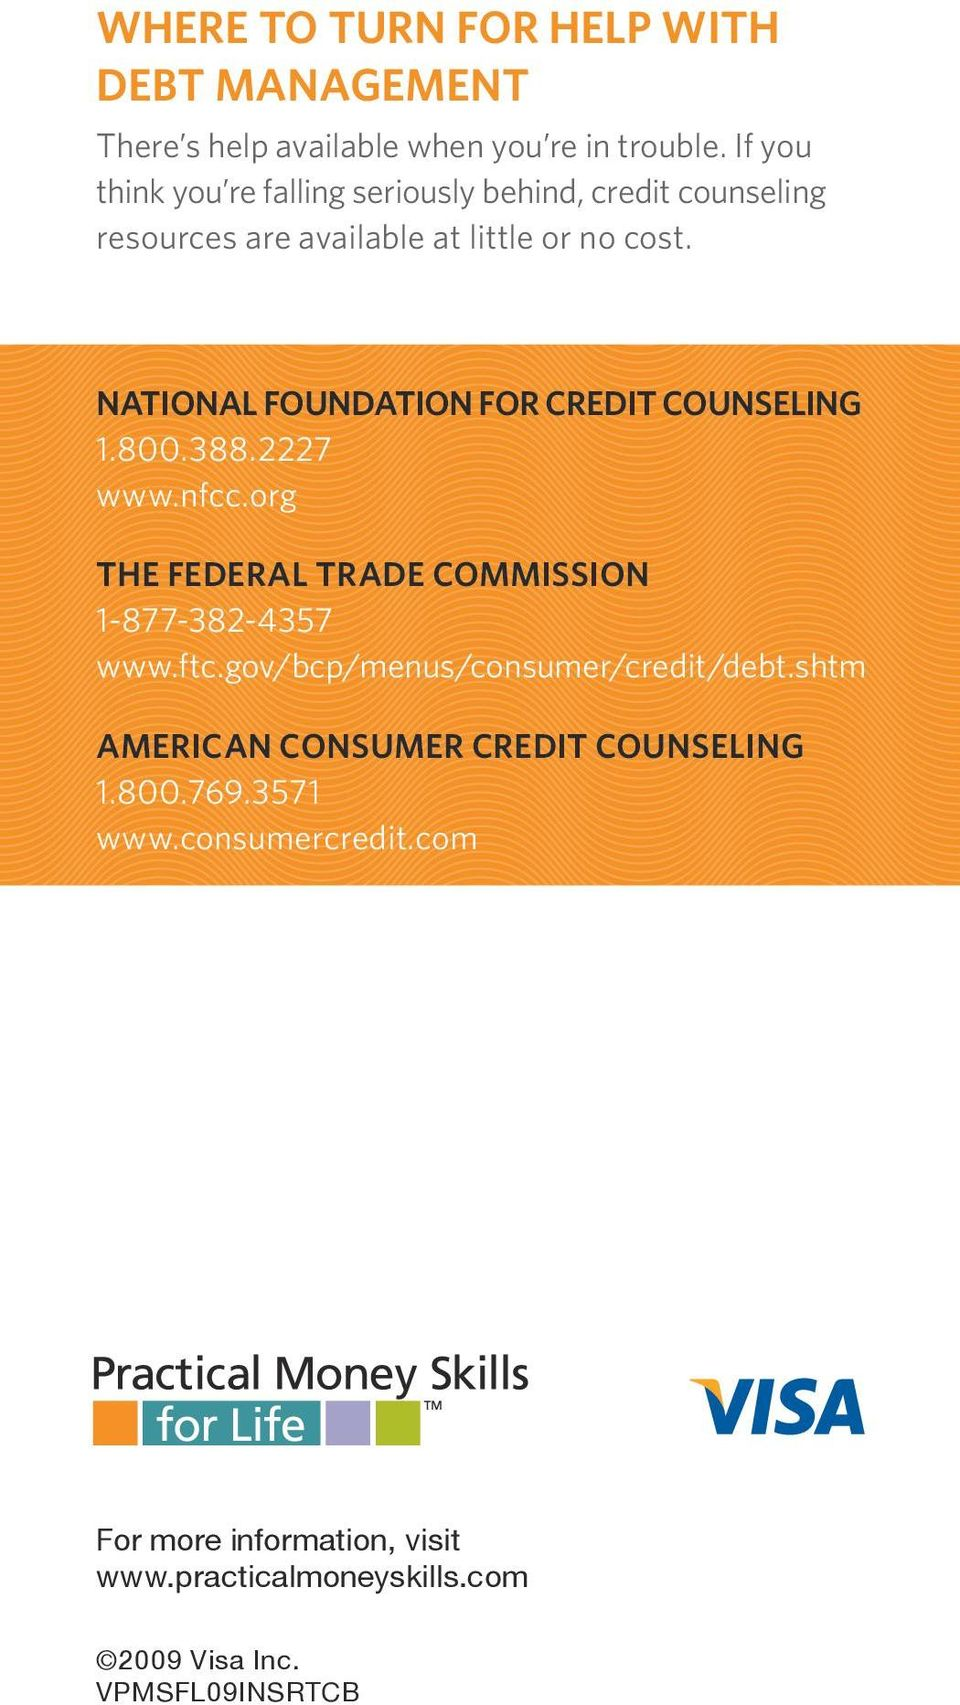 NATIONAL FOUNDATION FOR CREDIT COUNSELING 1.800.388.2227 www.nfcc.org THE FEDERAL TRADE COMMISSION 1-877-382-4357 www.ftc.